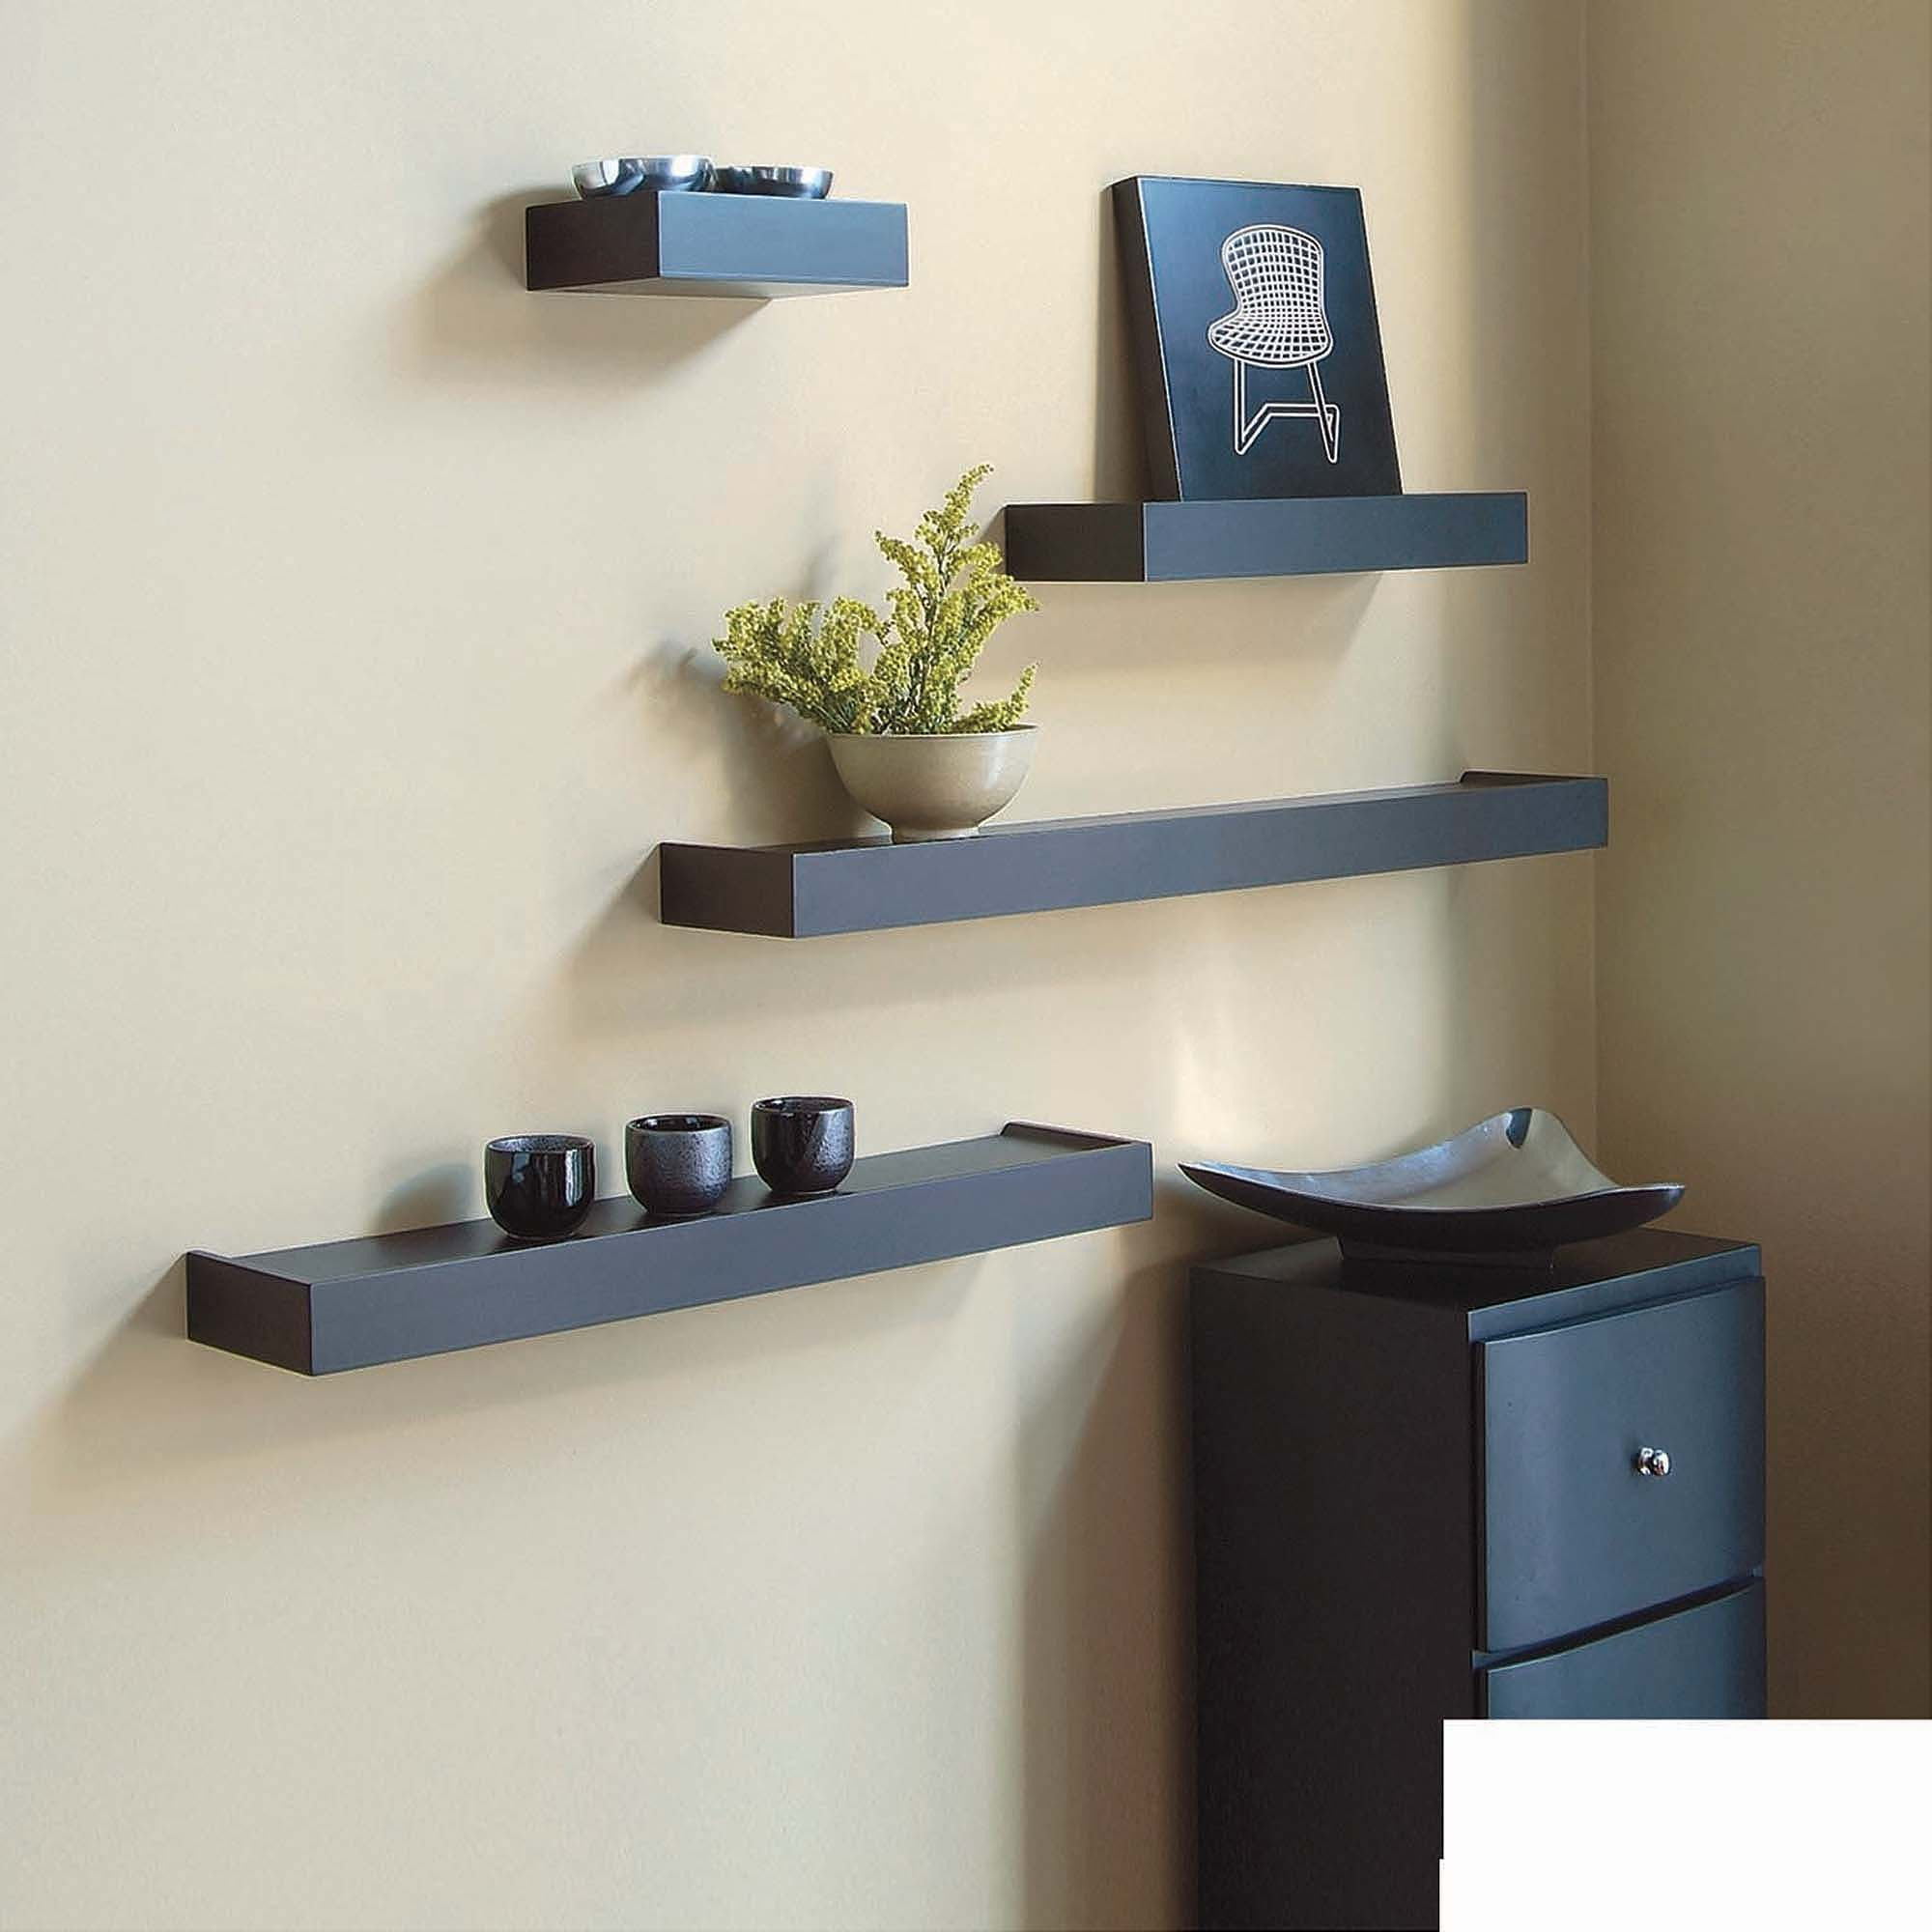 Wall Shelf Design Inplace Shelving 23 6